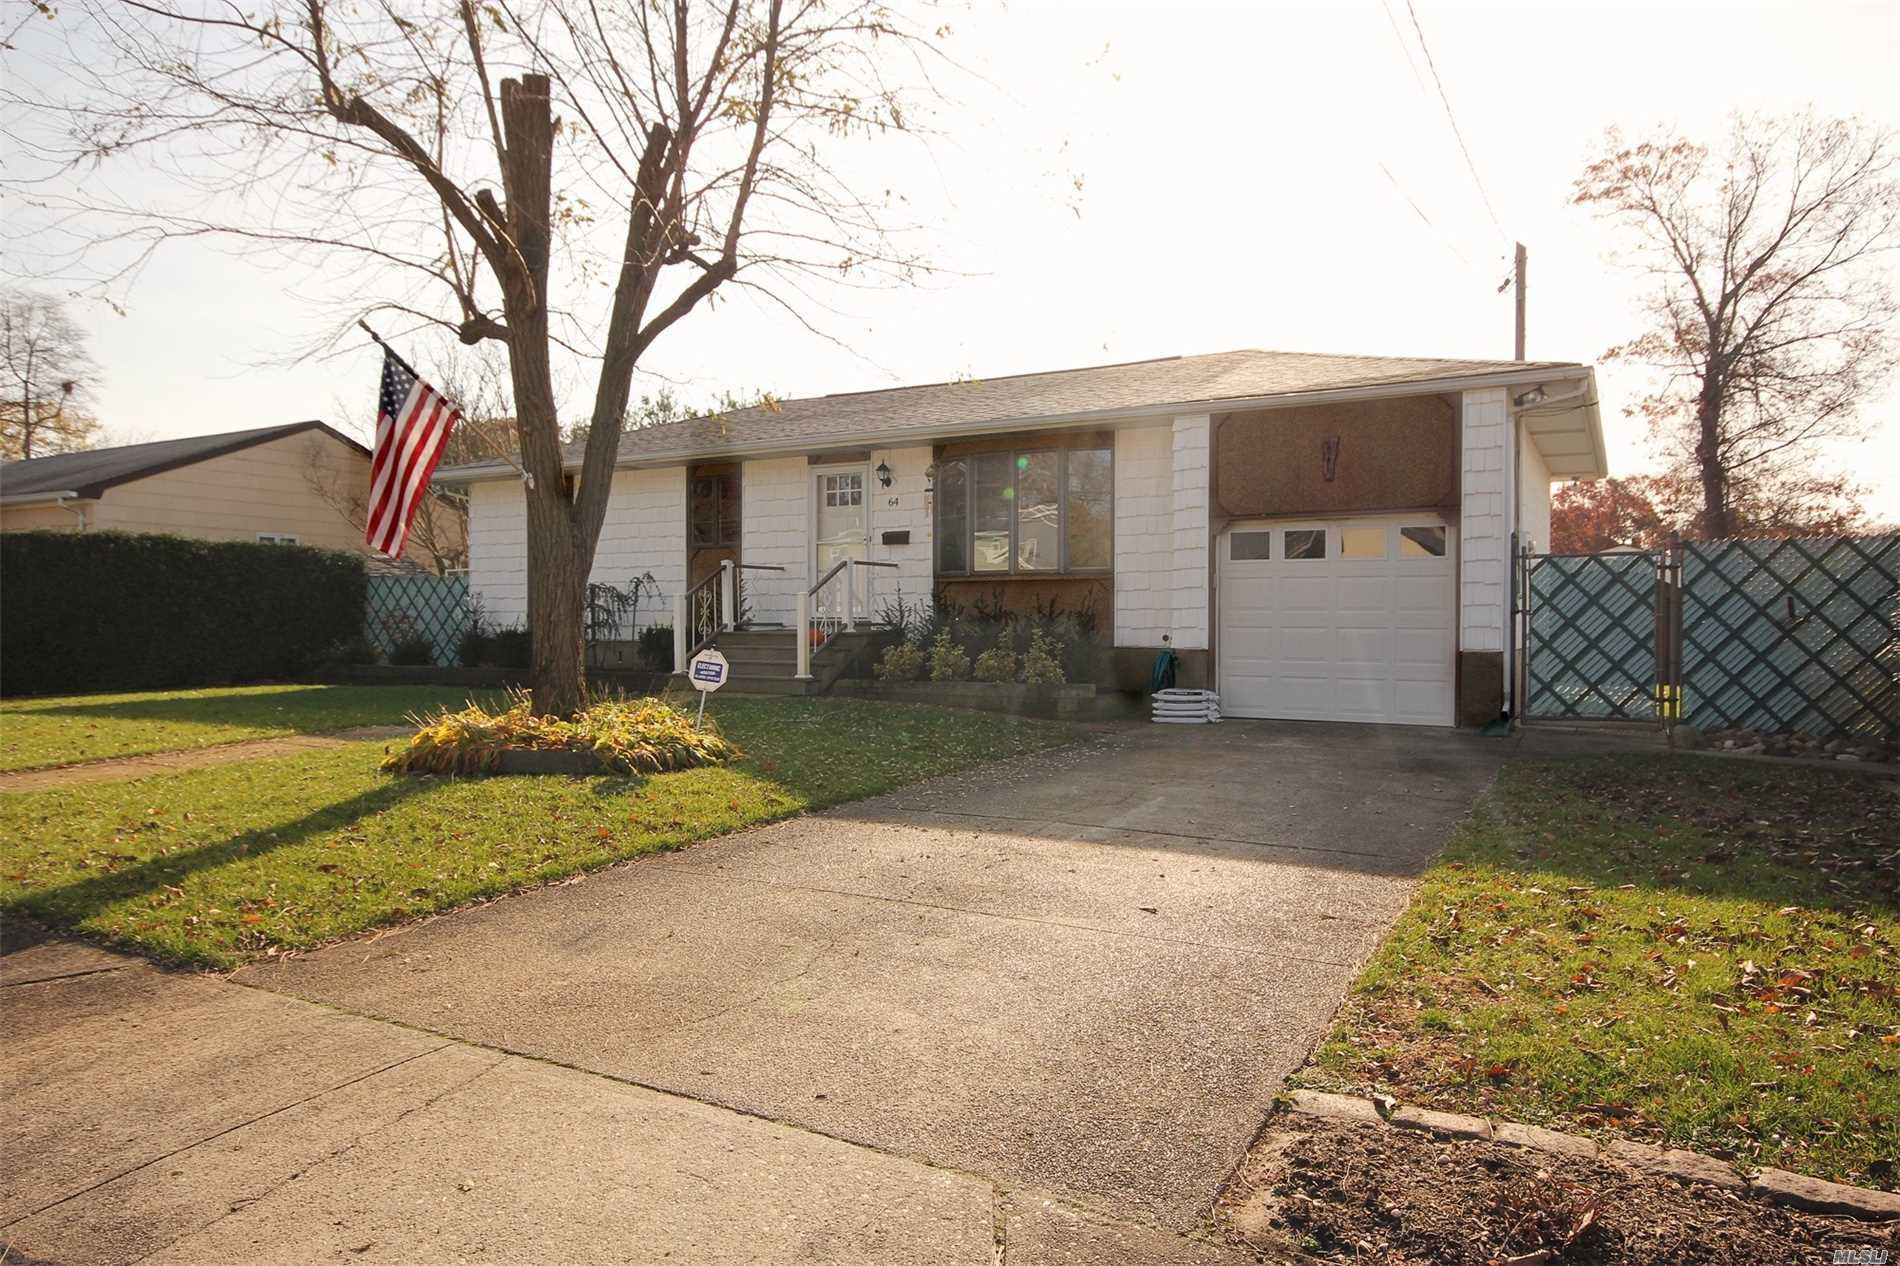 Photo of home for sale at 64 Danbury St, Bay Shore NY